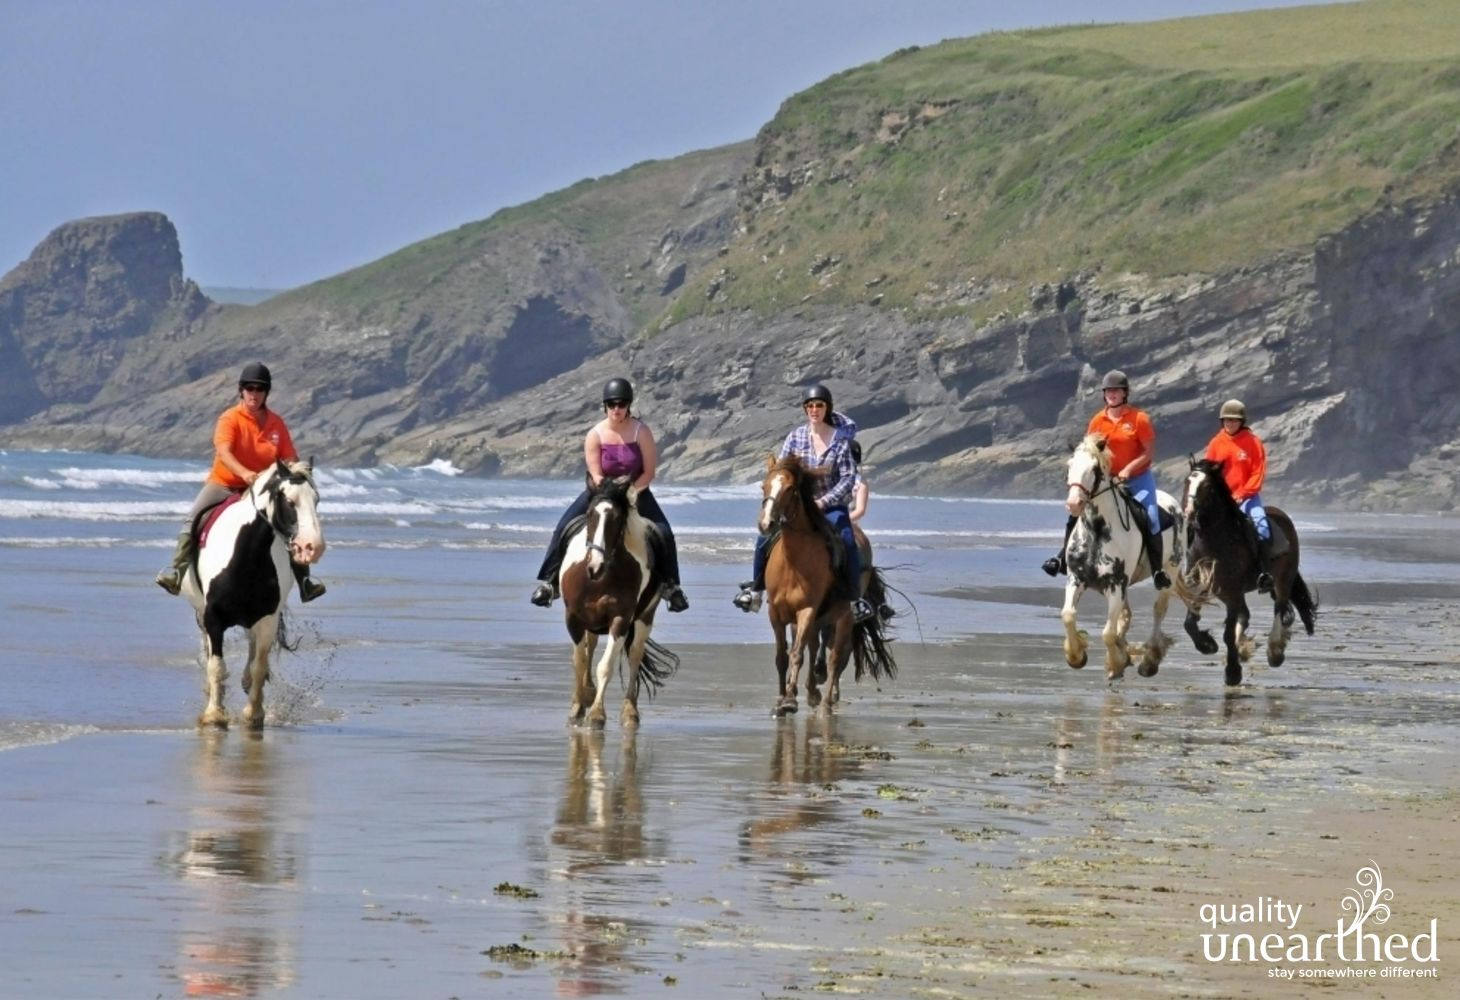 horse-riding on beach, Pembrokeshire